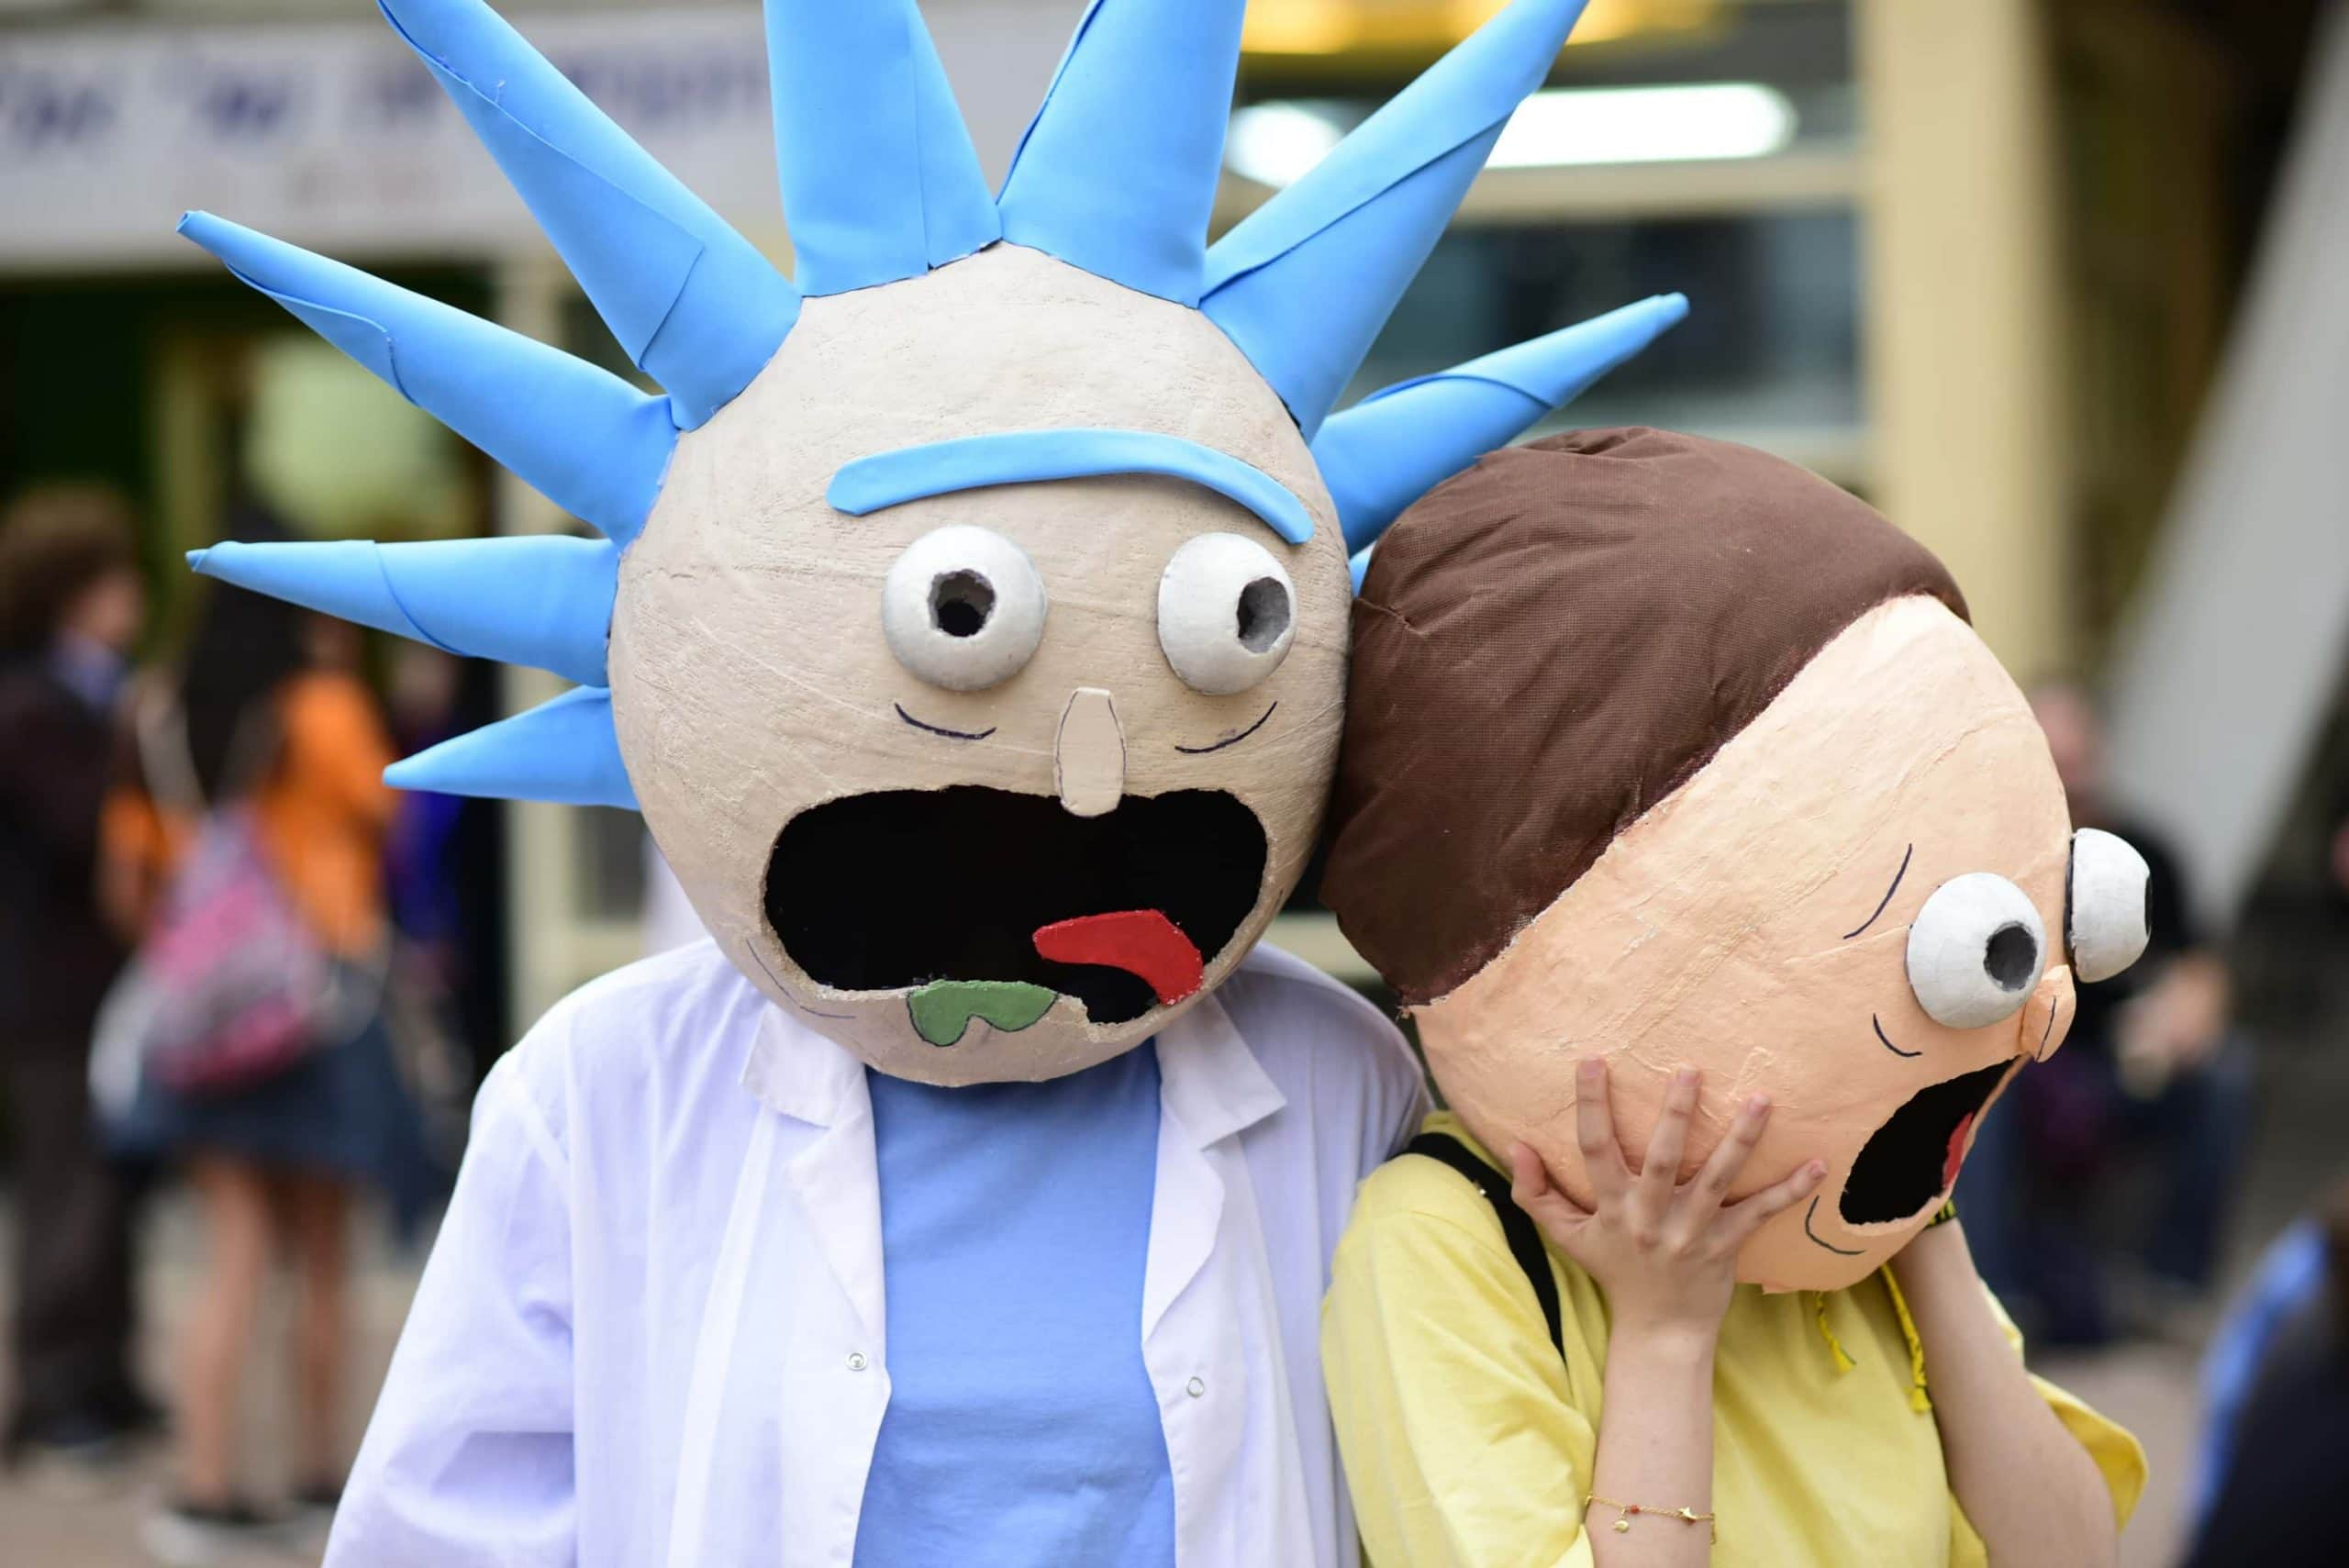 Rick and Morty NFT